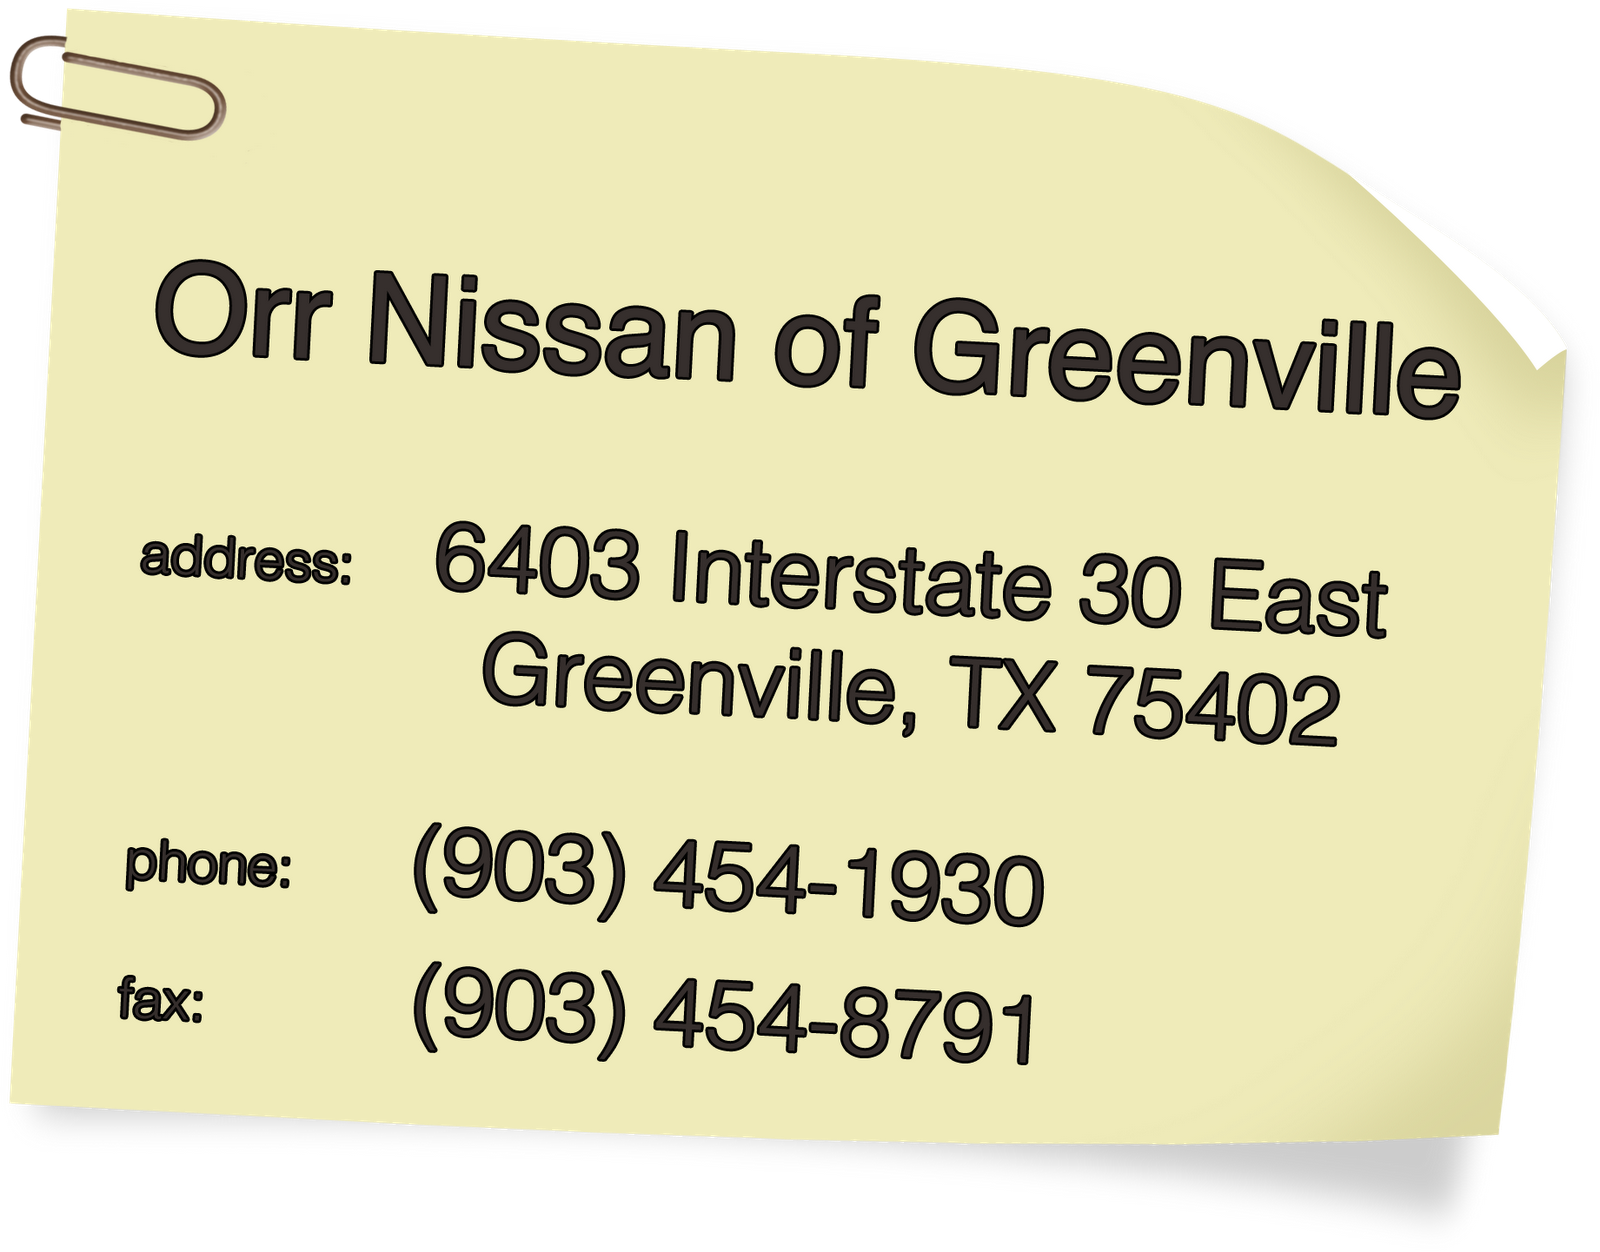 If You Have Any Questions, Please Feel Free To Contact Us Or Visit The  Dealership!